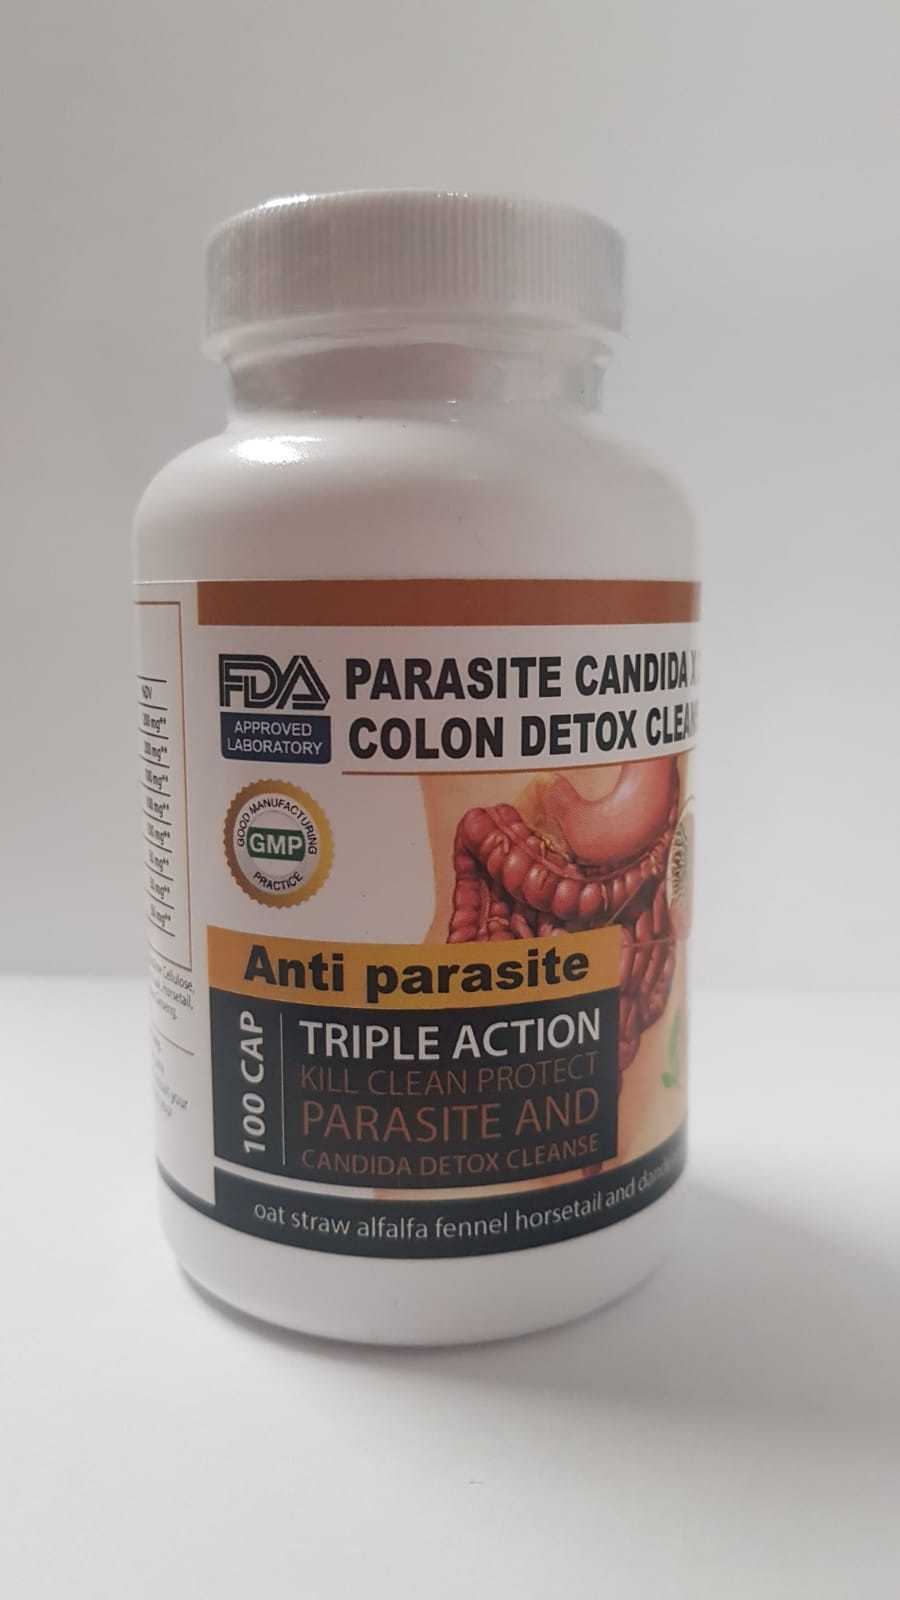 Parasite Cleanse DETOX Liver Colon Yeast Killer Pills All Natural detox candida 2